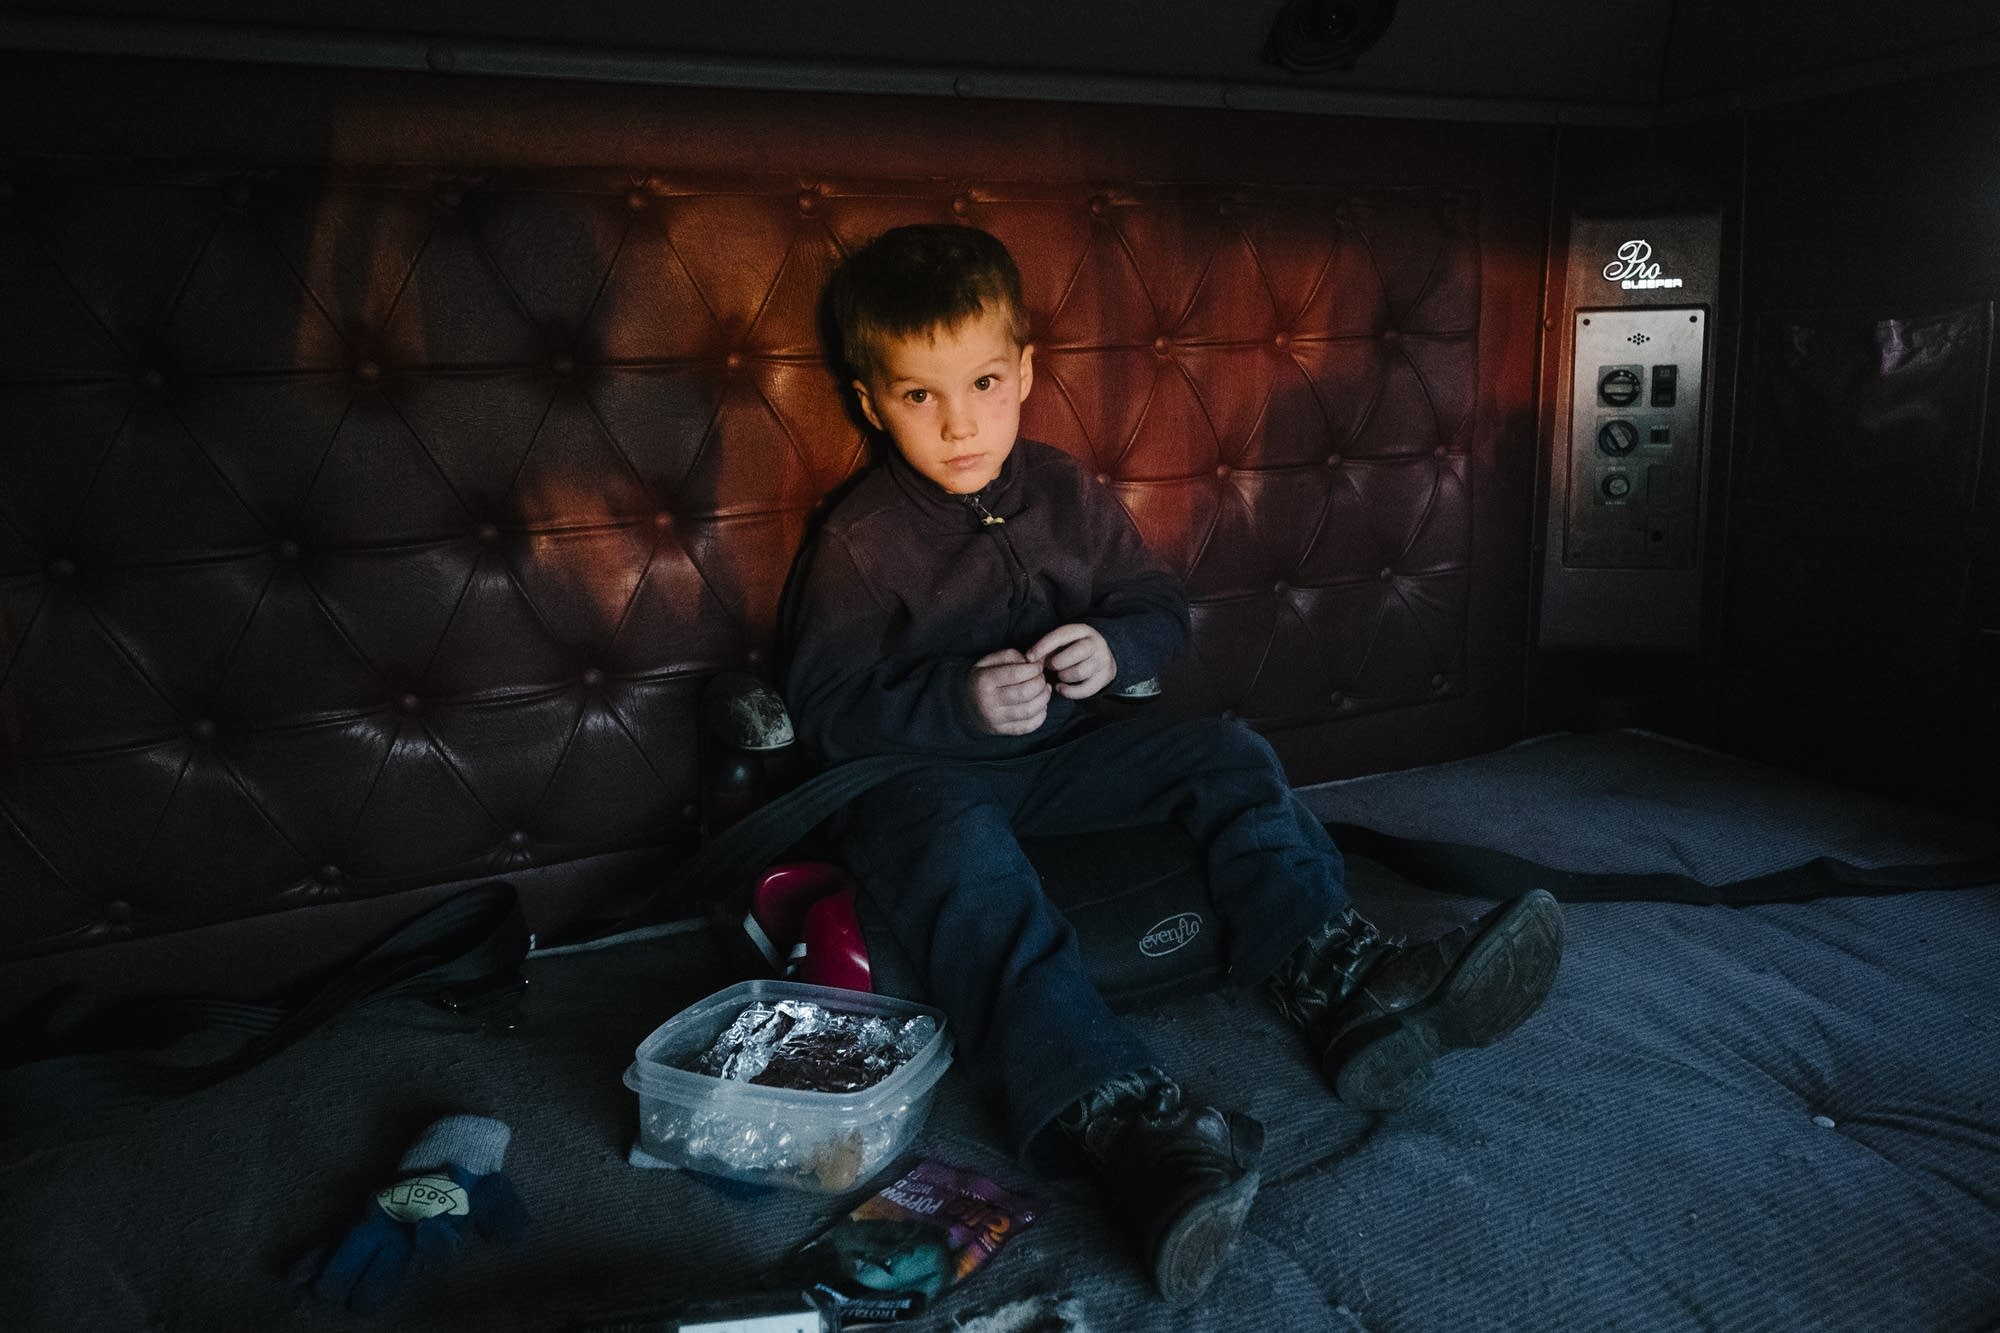 Jonathan Collins rides in the backseat of his dad's truck.